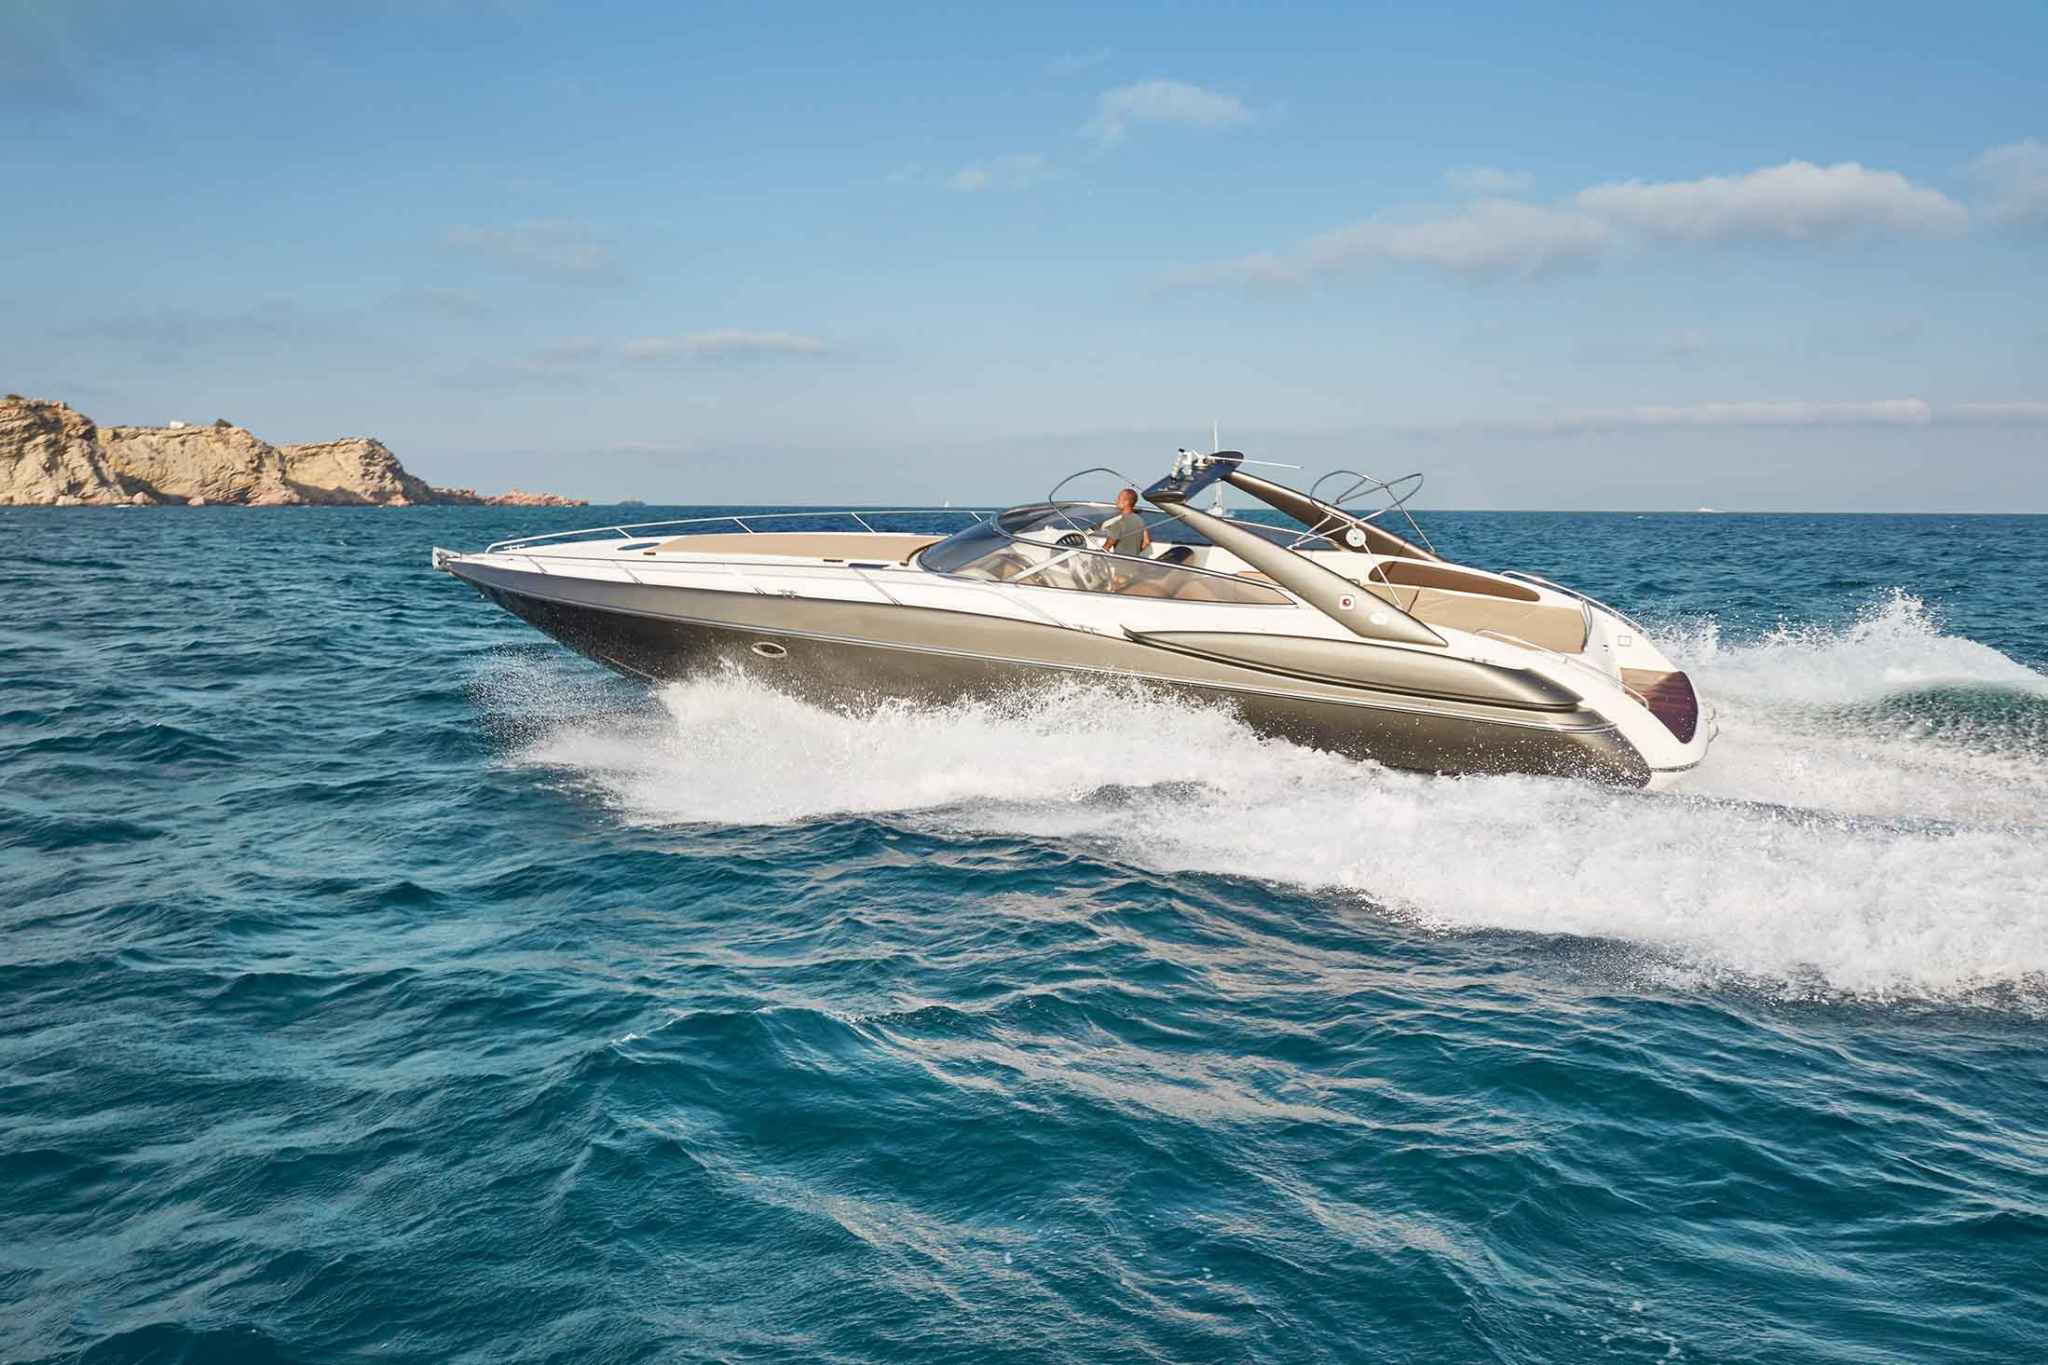 Our charter boat the Sunseeker Superhawk 48 cruising in bright blue water